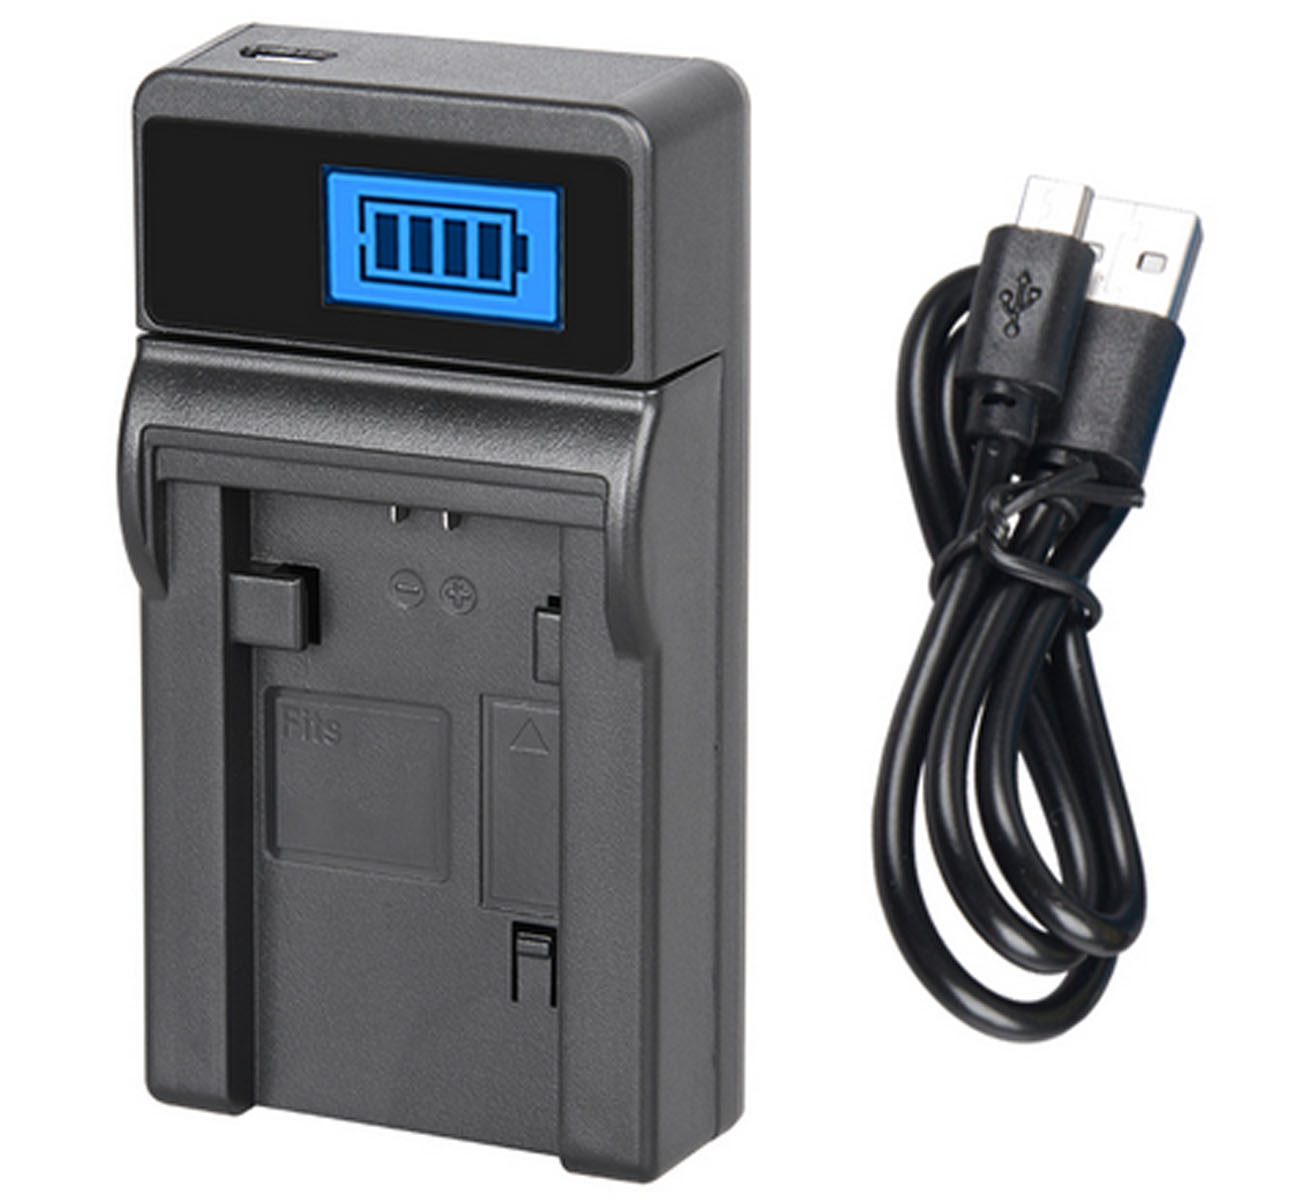 GZ-MG555U GZ-MG575 LCD USB Battery Charger for JVC Everio GZ-MG555 GZ-MG575U Camcorder